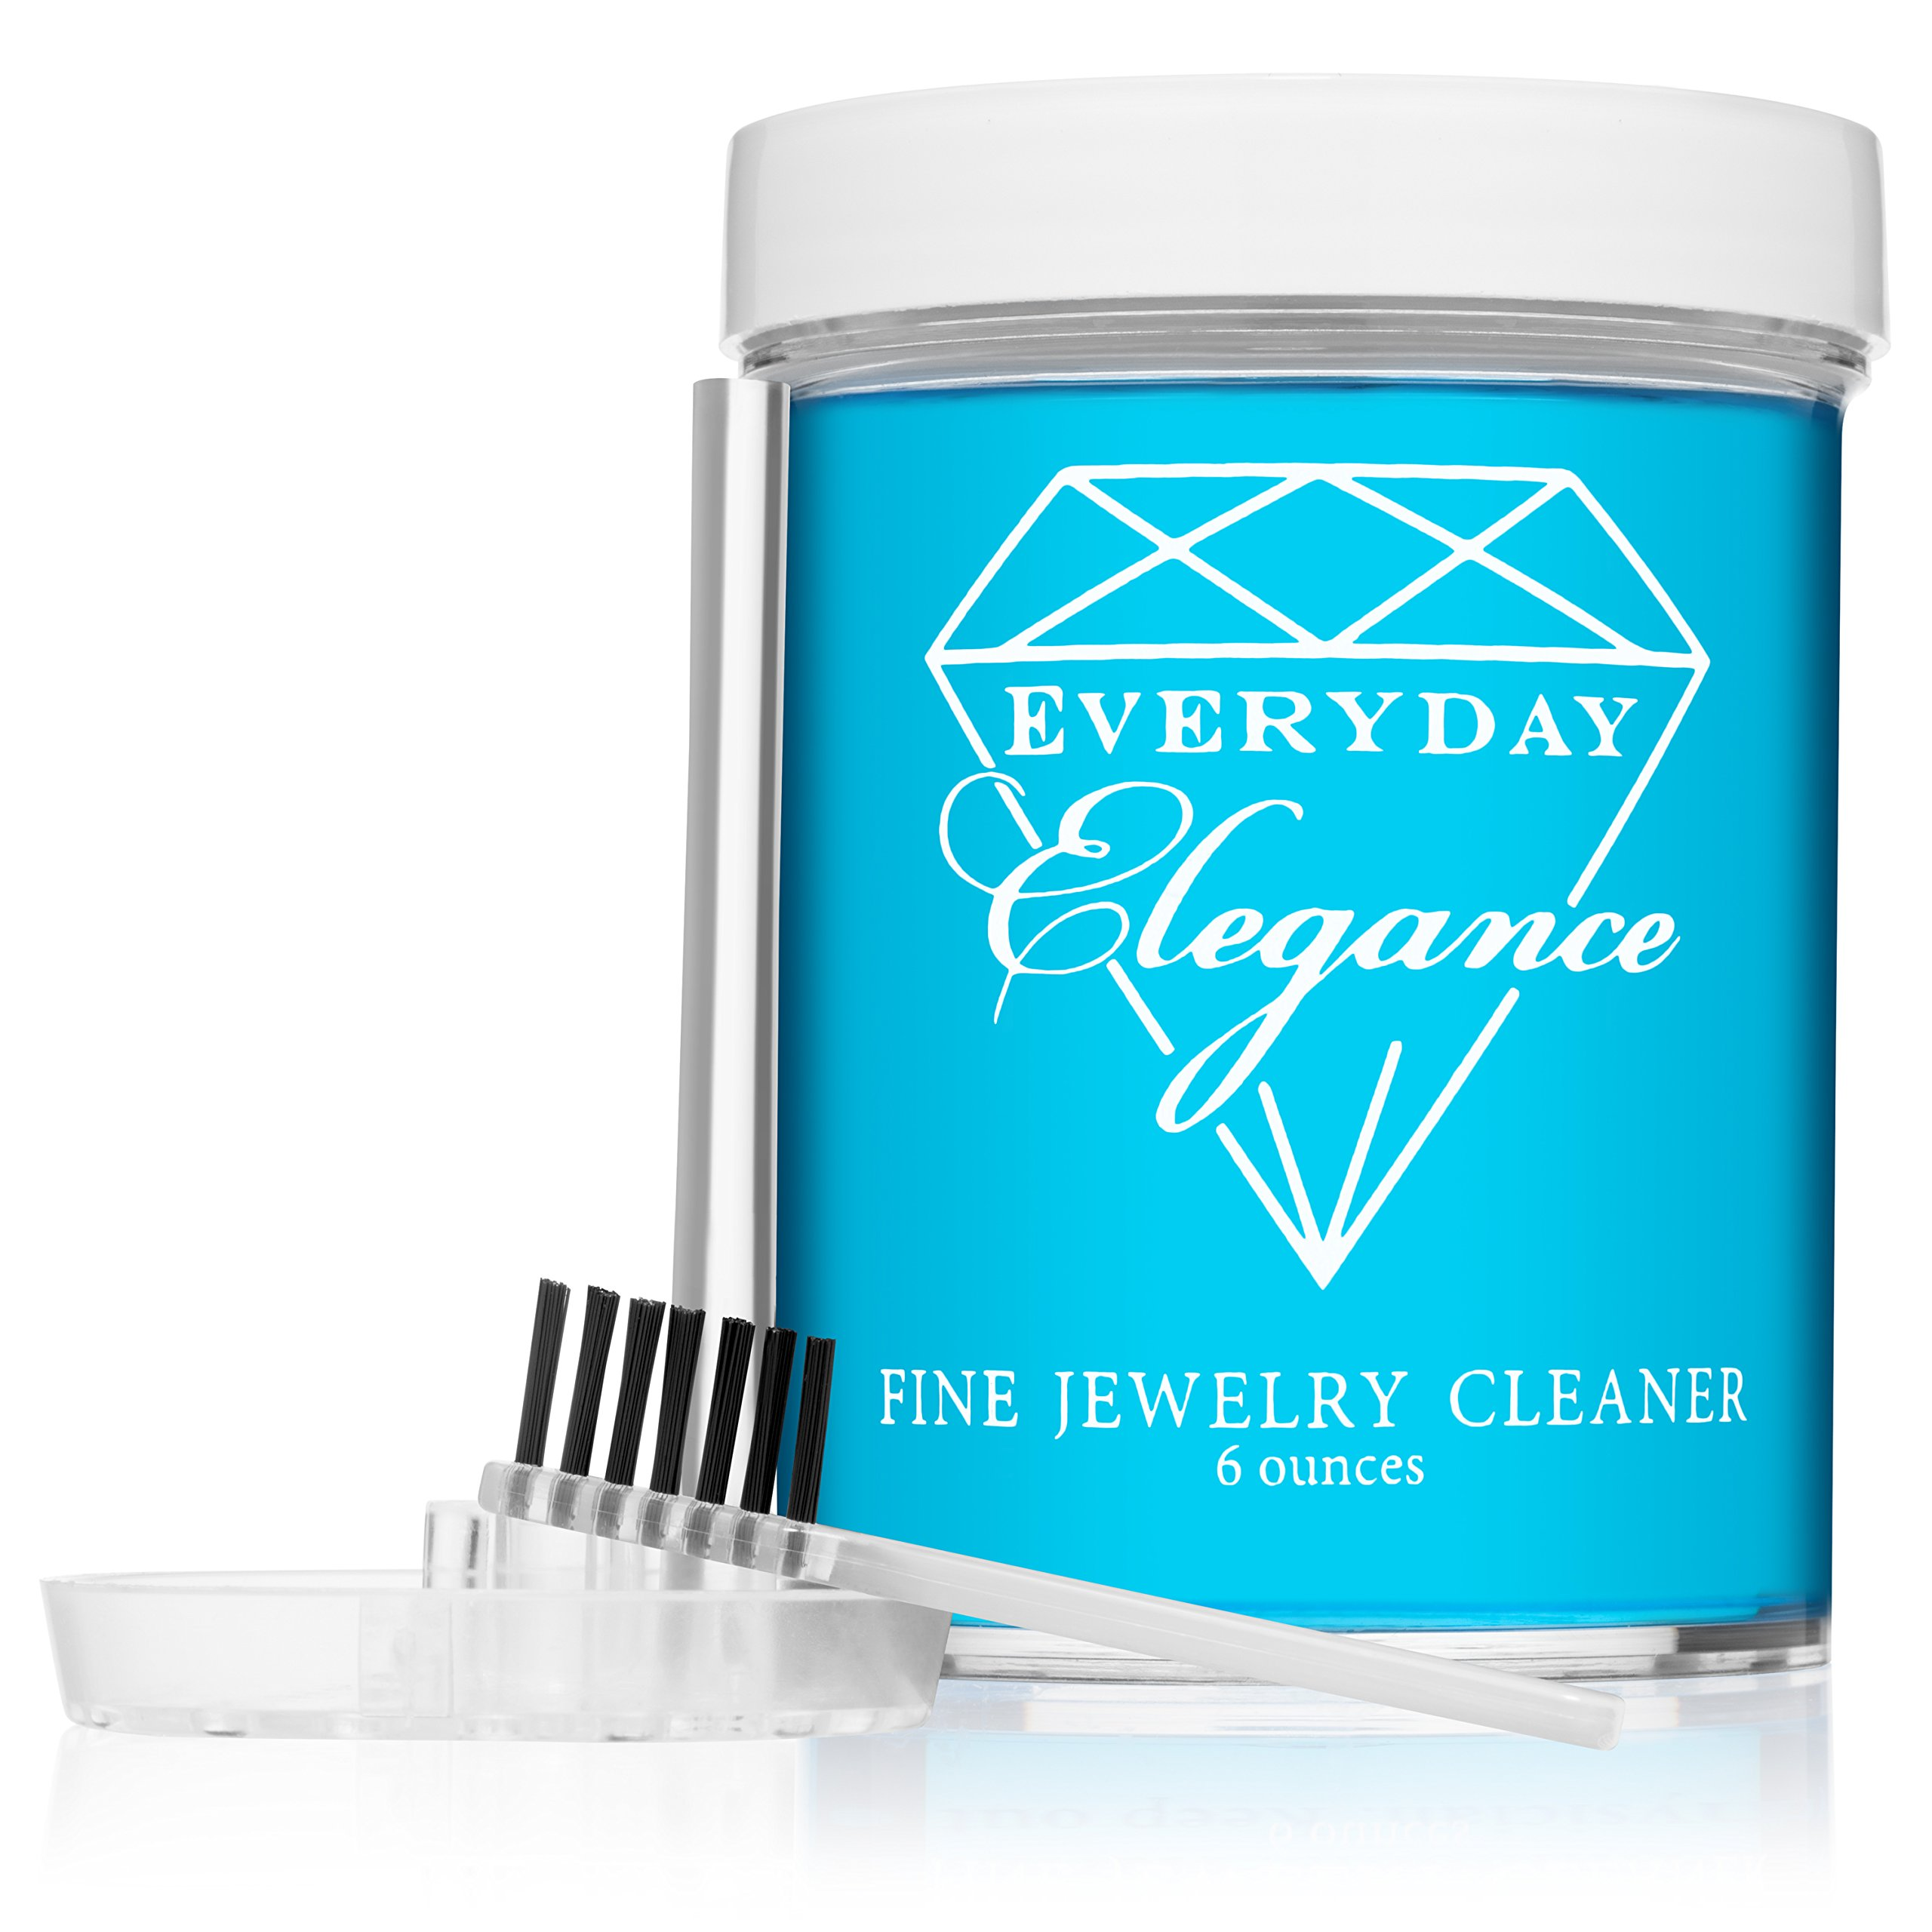 Everyday Elegance | Fine Jewelry Cleaner | Solution to Clean Gold, Platinum and Diamonds with Brush & Tray | 6 Ounce Jar